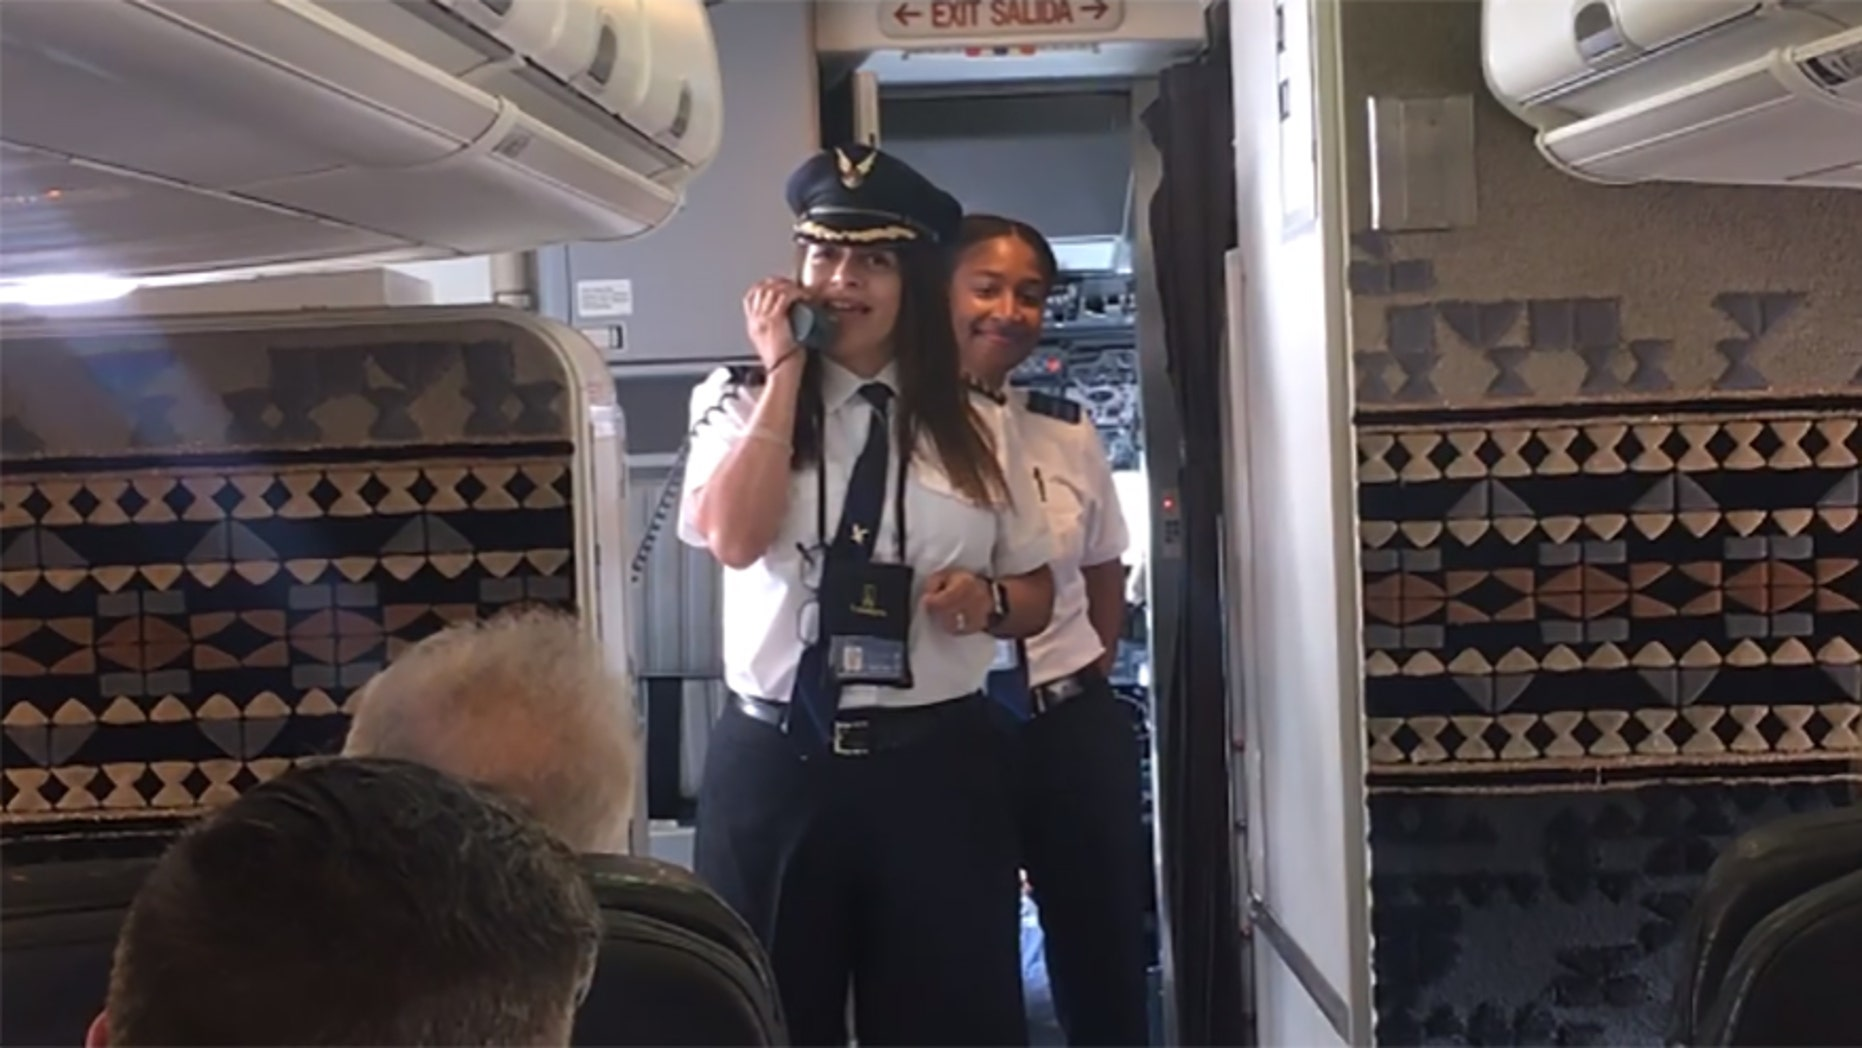 Captain Tara Write and First Officer Mallory Cave told passengers they were on a history-making flight on Sunday.